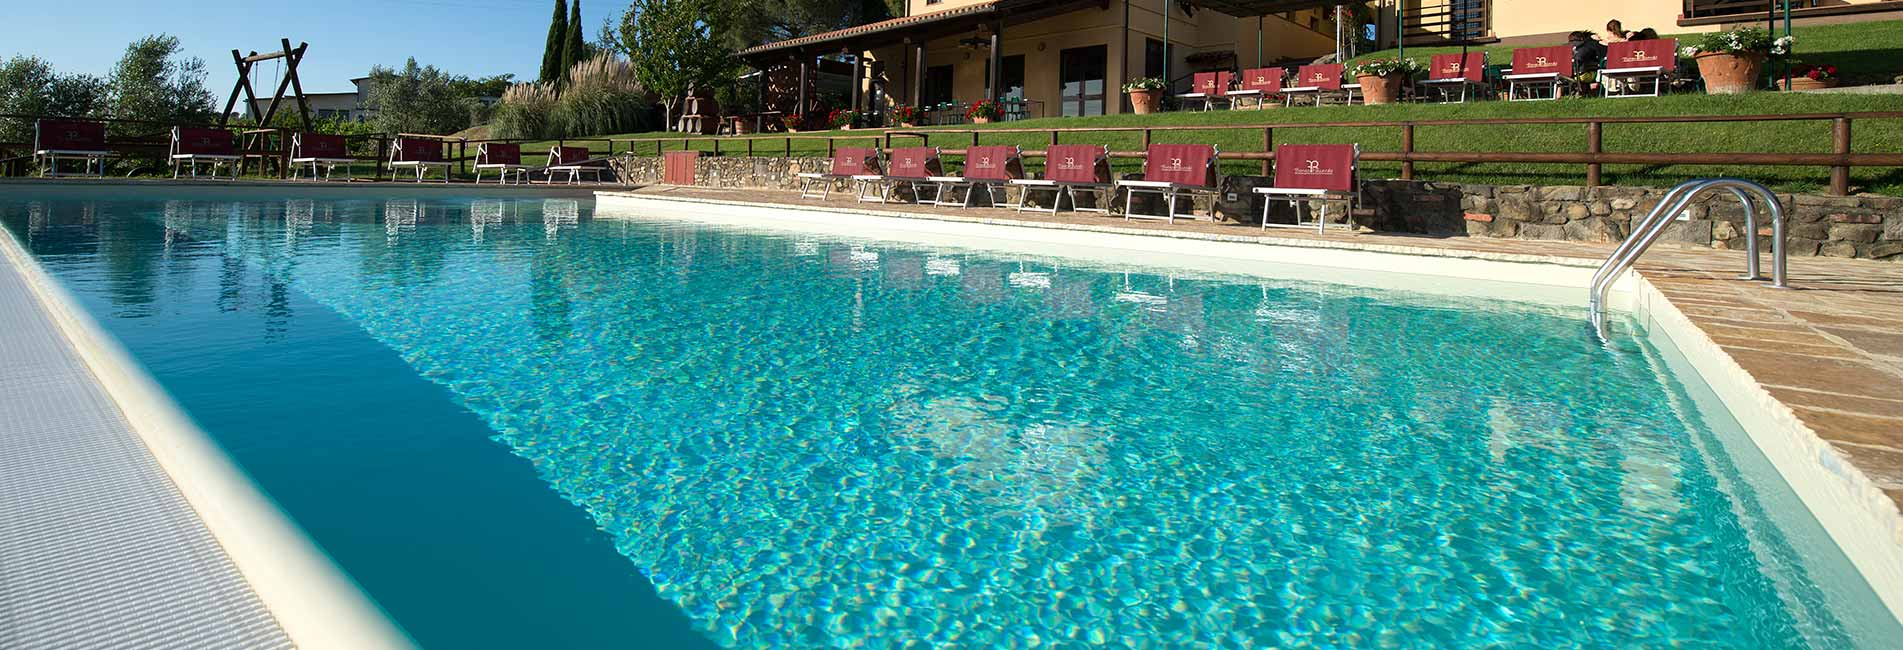 borgo_filicardo_apartments_chianti_tuscany_swimming_pool7